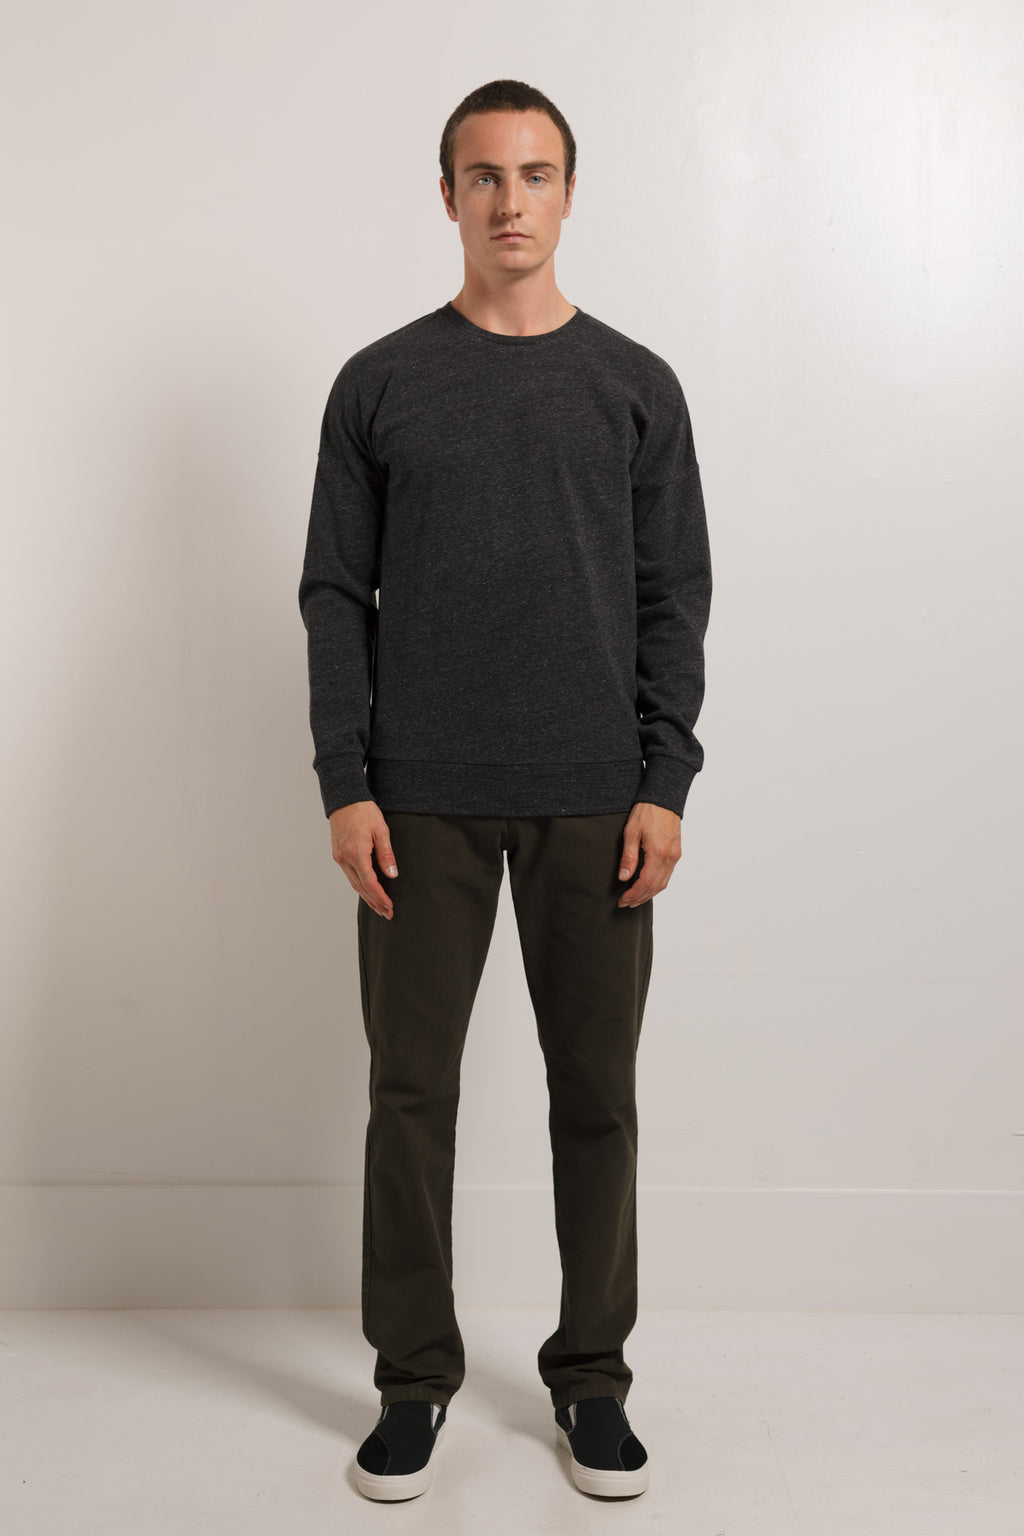 250gm French Terry Crew in Melange Black